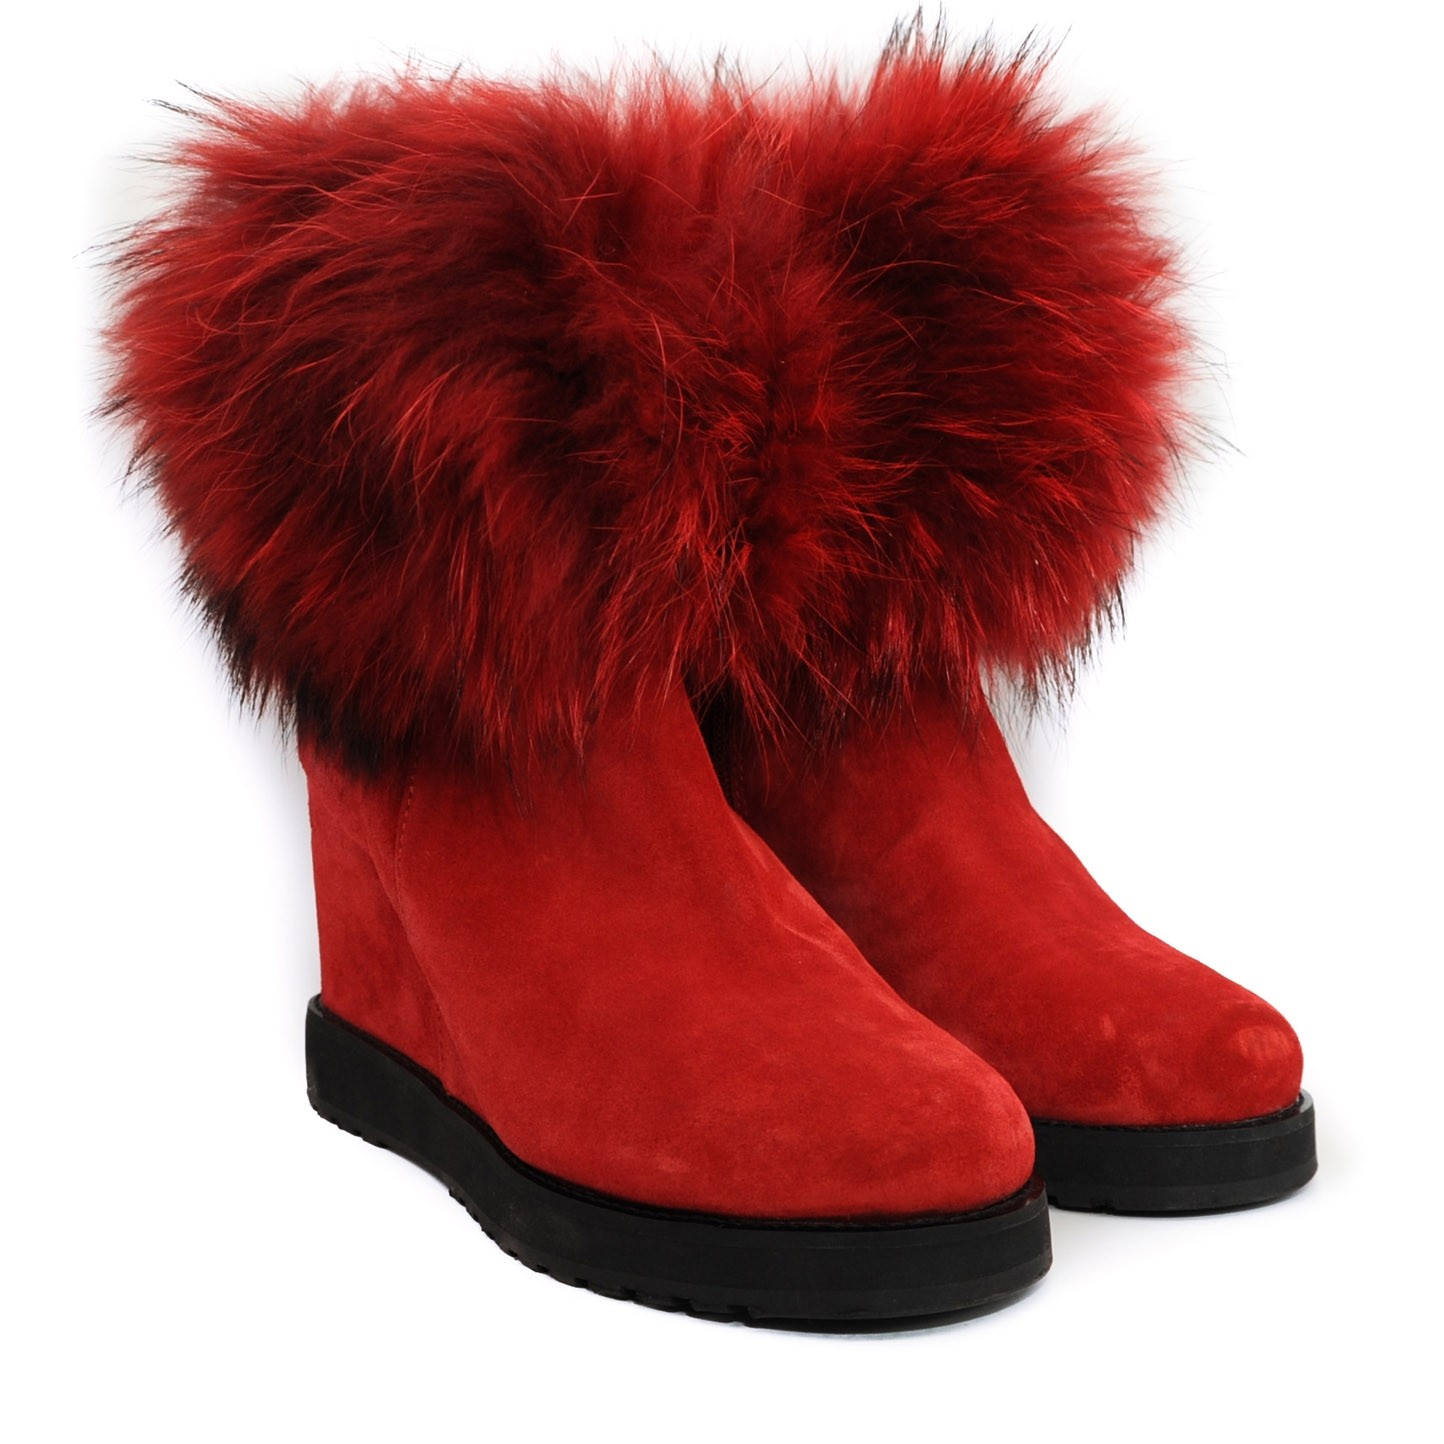 Pegia Suede Red Winter Ankle Boots with Inner Raised Heel Wool Lined and Fur Trimmed